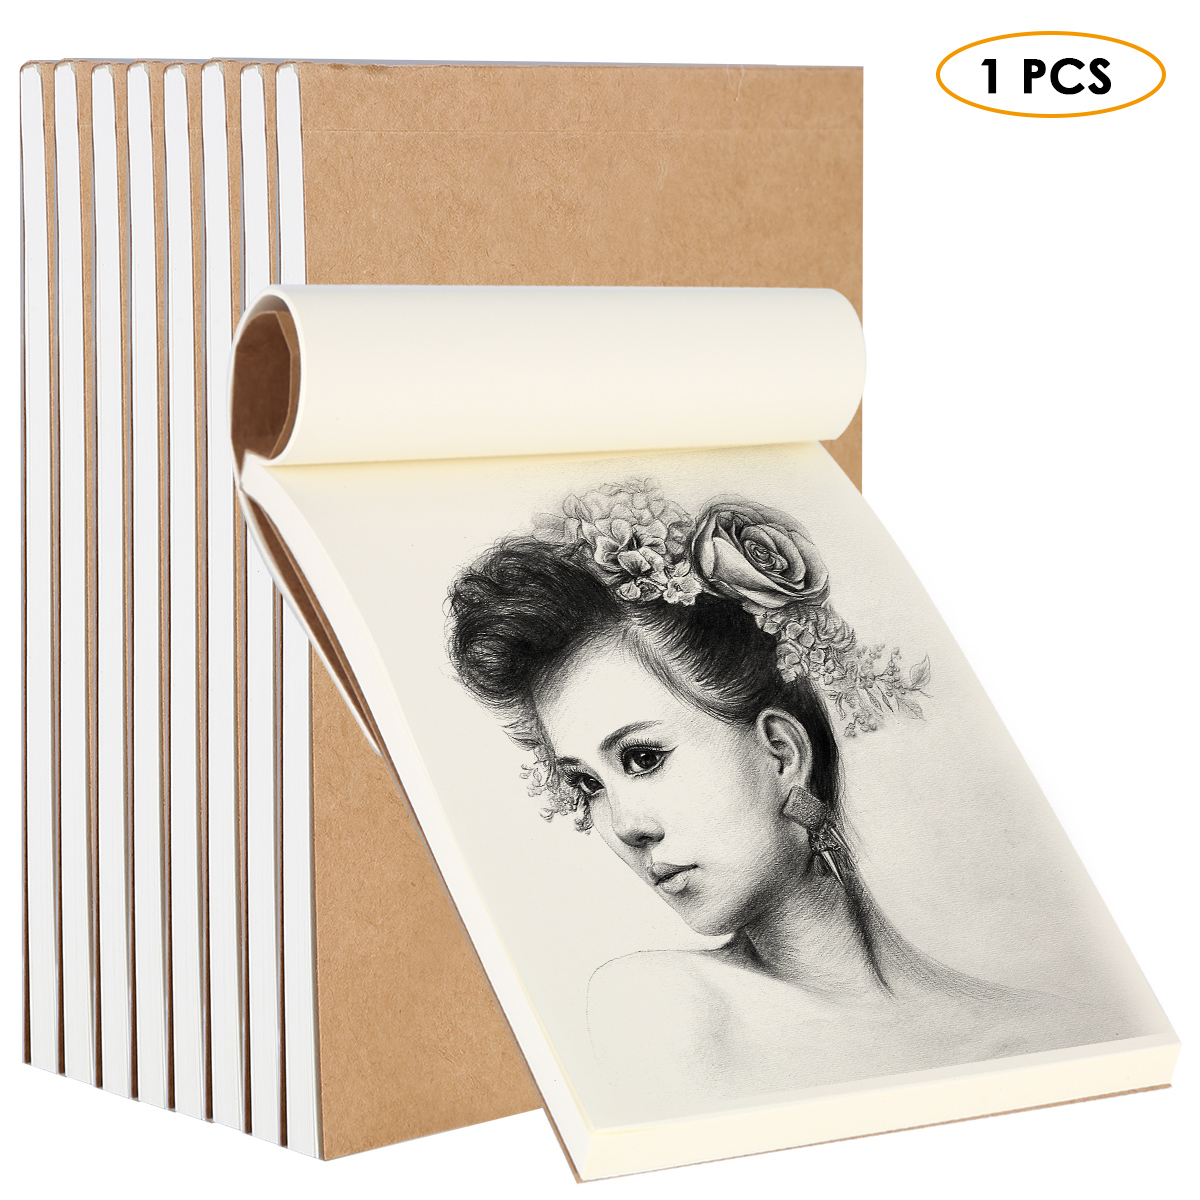 80 Sheets Blank Flipbook 1pc Blank Flipbooks Drawing Sketchbook Kraft Cover Drawing Sketchbooks For Animation Cartoon Creation